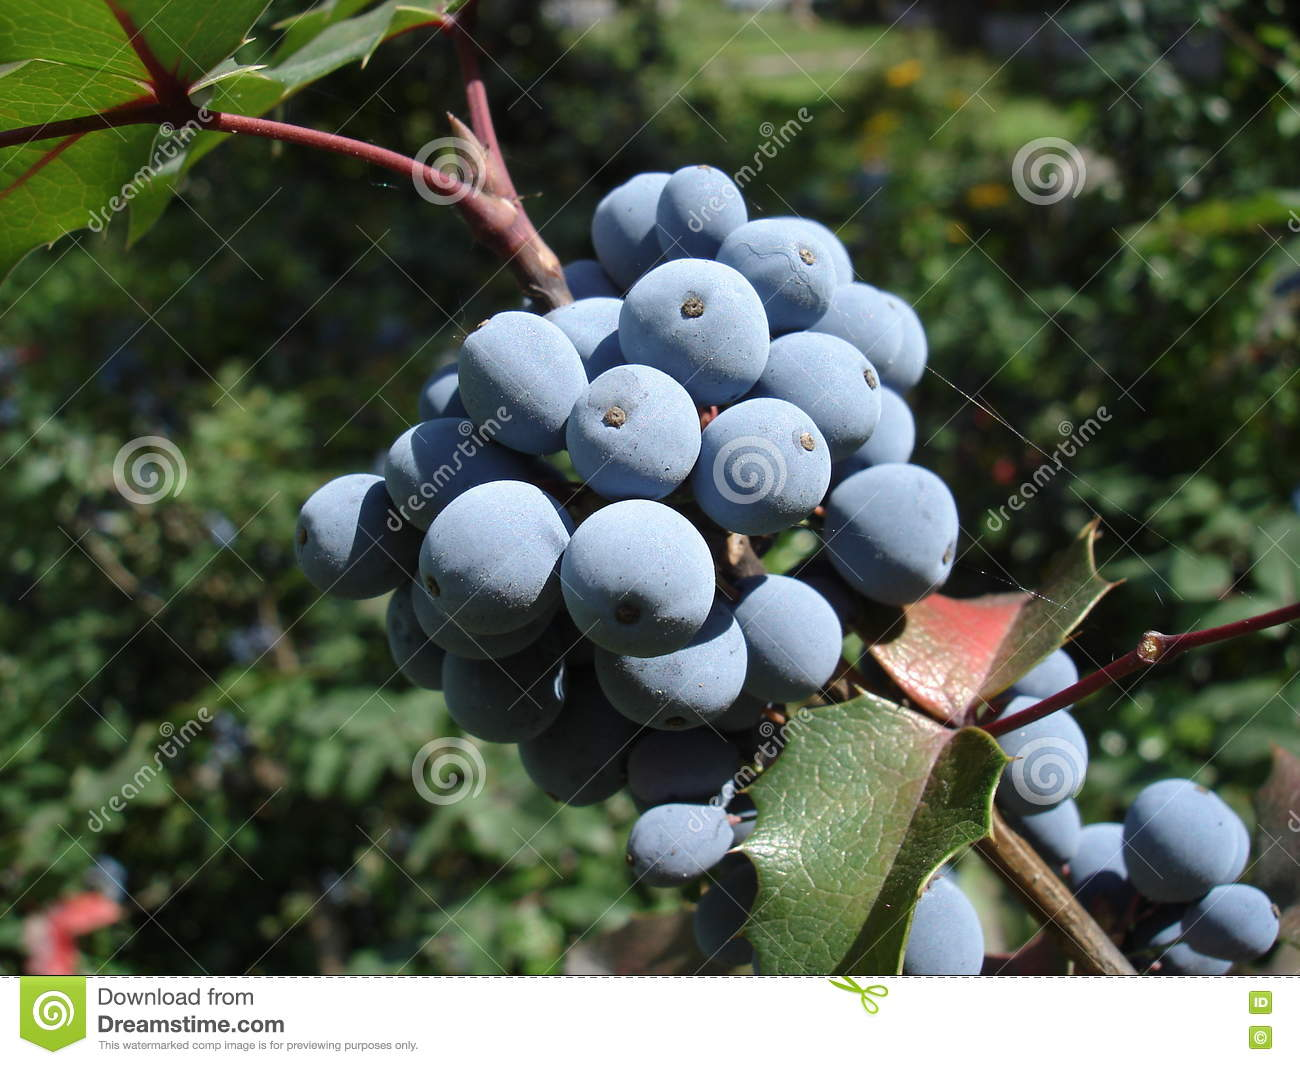 mahonia aquifolium blaue frucht und gr nbl tter stockbild. Black Bedroom Furniture Sets. Home Design Ideas